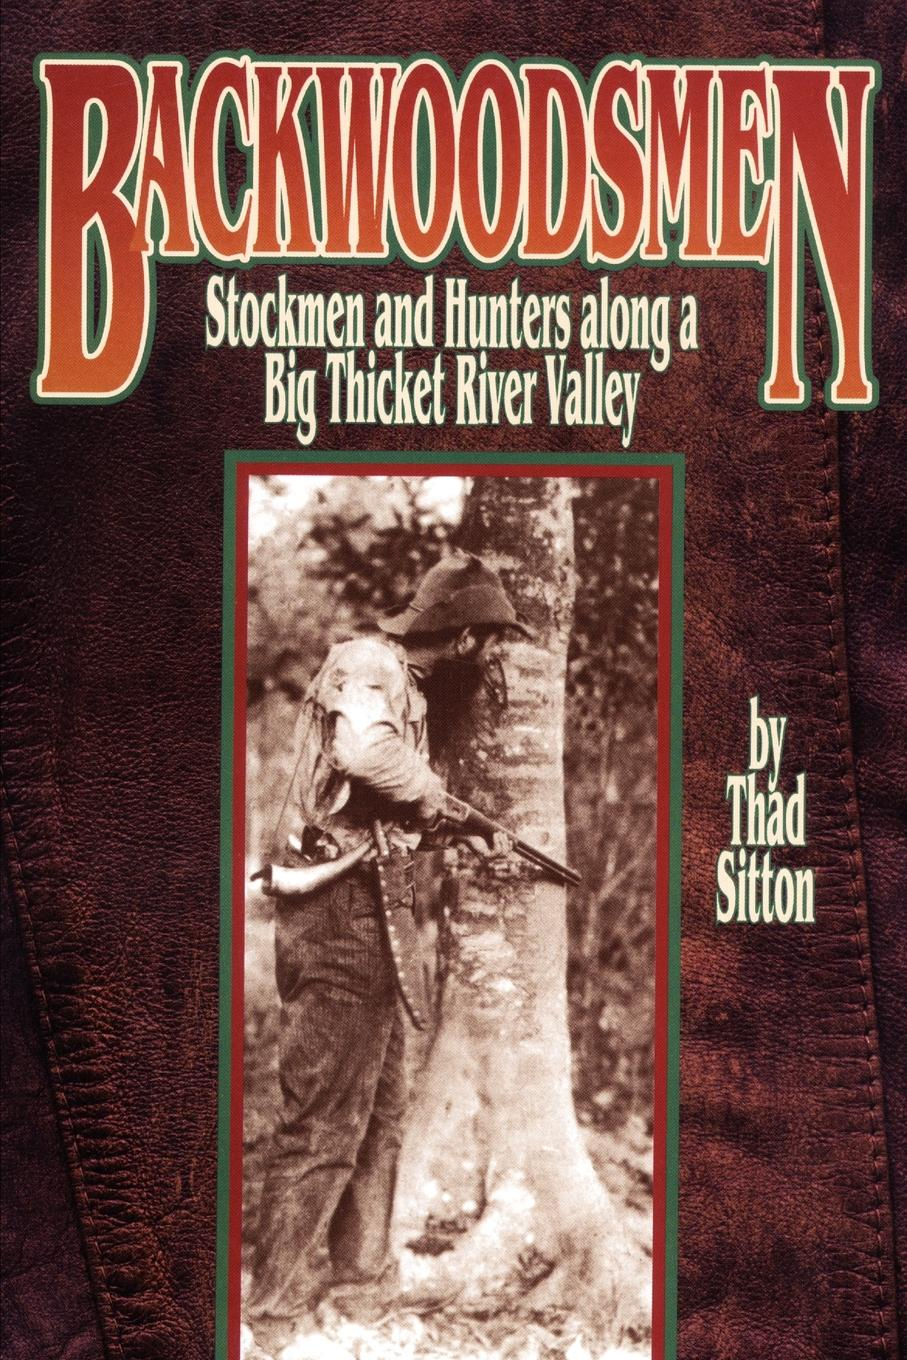 Thad Sitton BACKWOODSMEN. Stockmen and Hunters along a Big Thicket River Valley allen quincy the outdoor chums in the big woods or rival hunters of lumber run